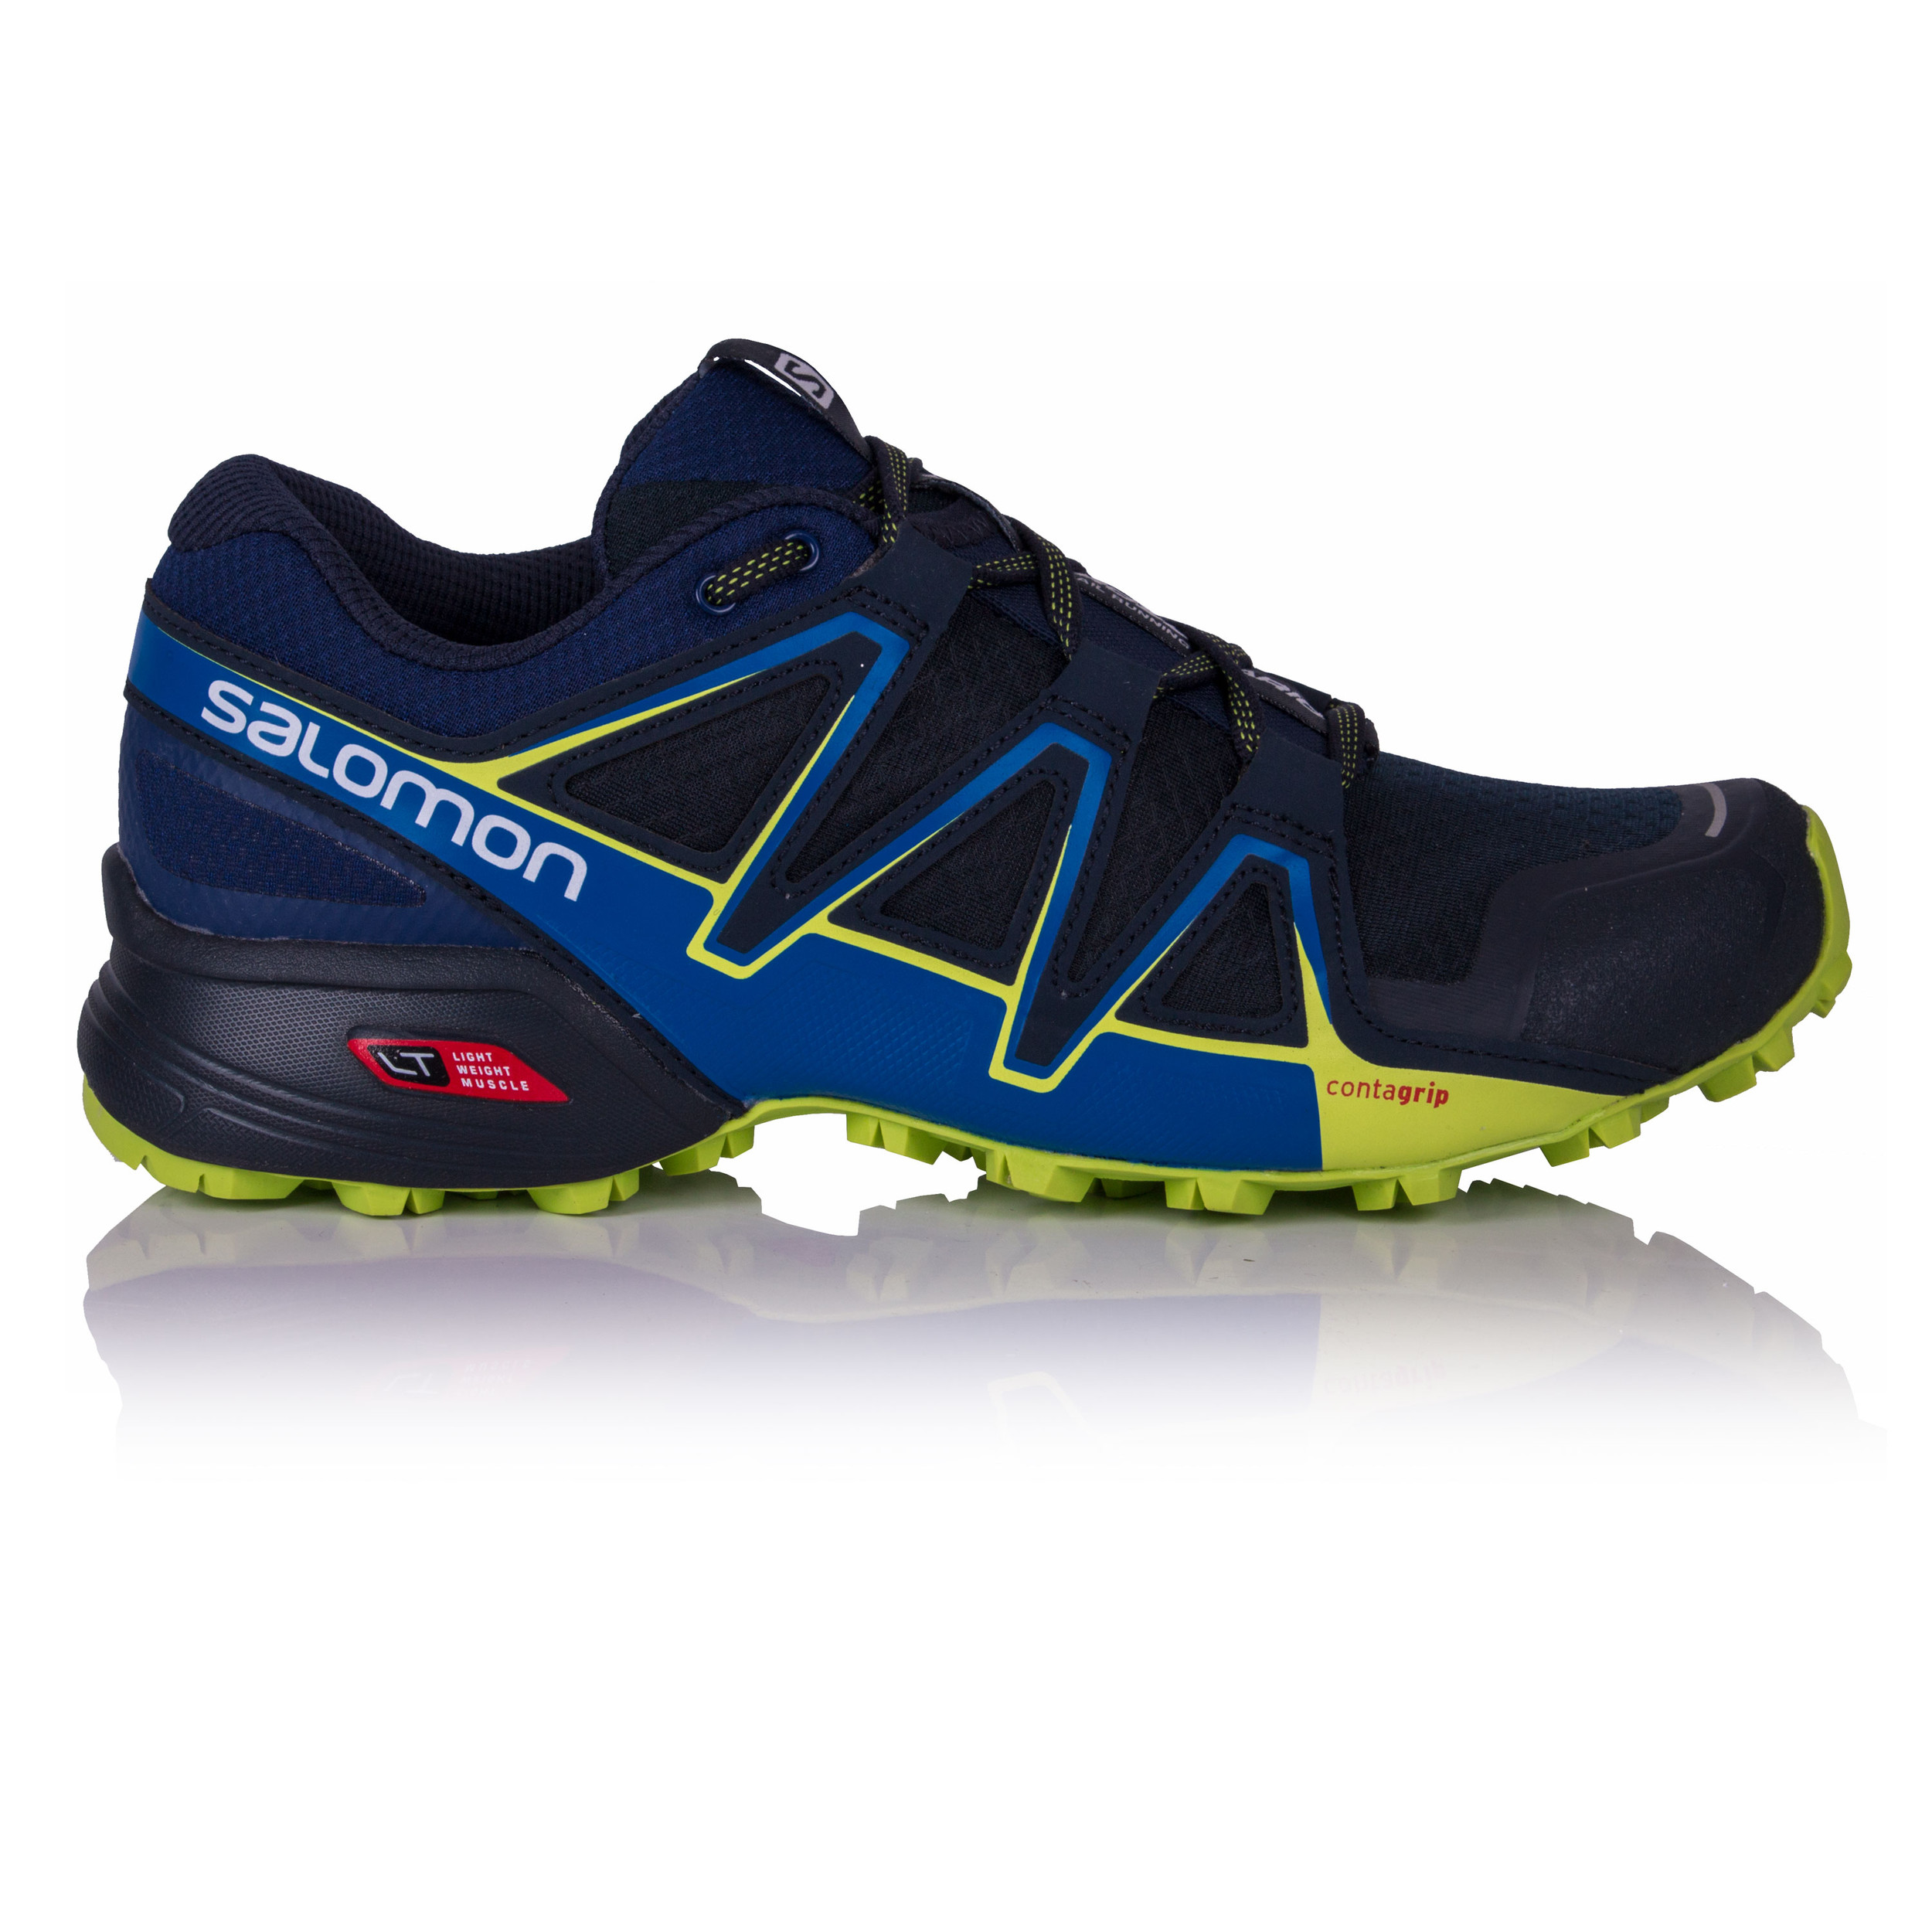 f3b519990a Details about Salomon Speedcross Vario 2 Mens Blue Trail Running Shoes  Trainers Pumps